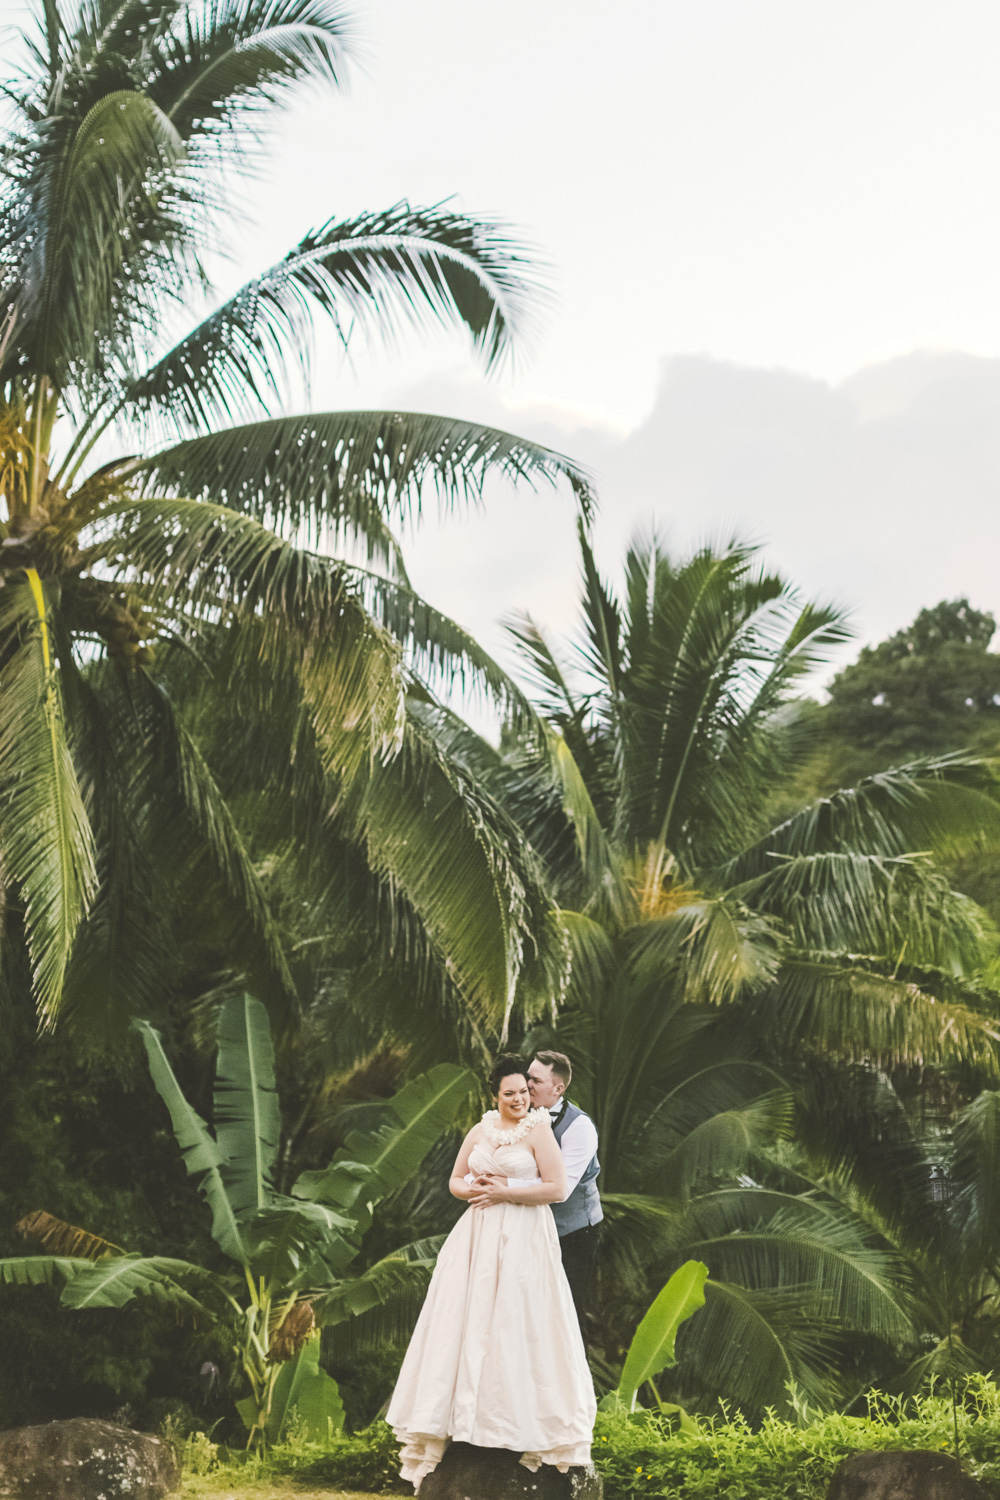 Maui hawaii photographer wedding inspiration_30.jpg